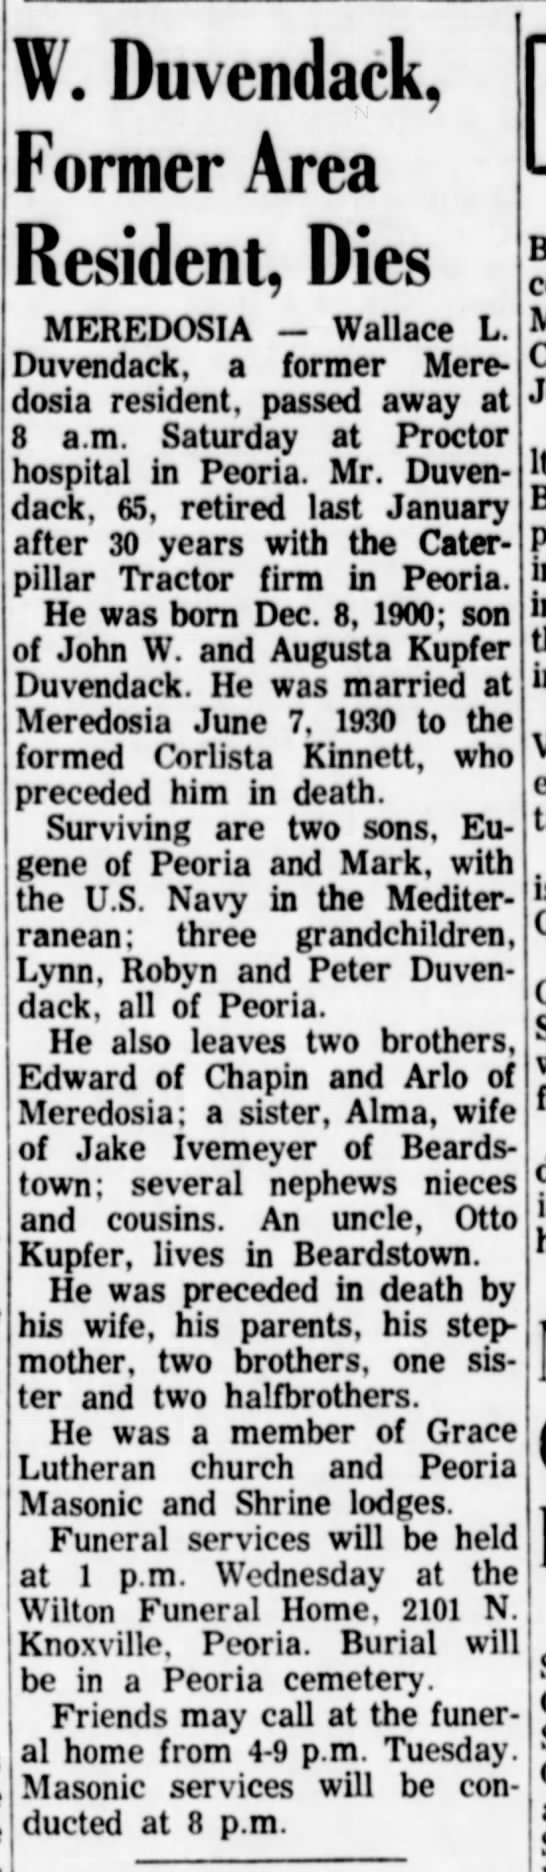 Wallace Duvendack obit, reported Dec 4 1966 -